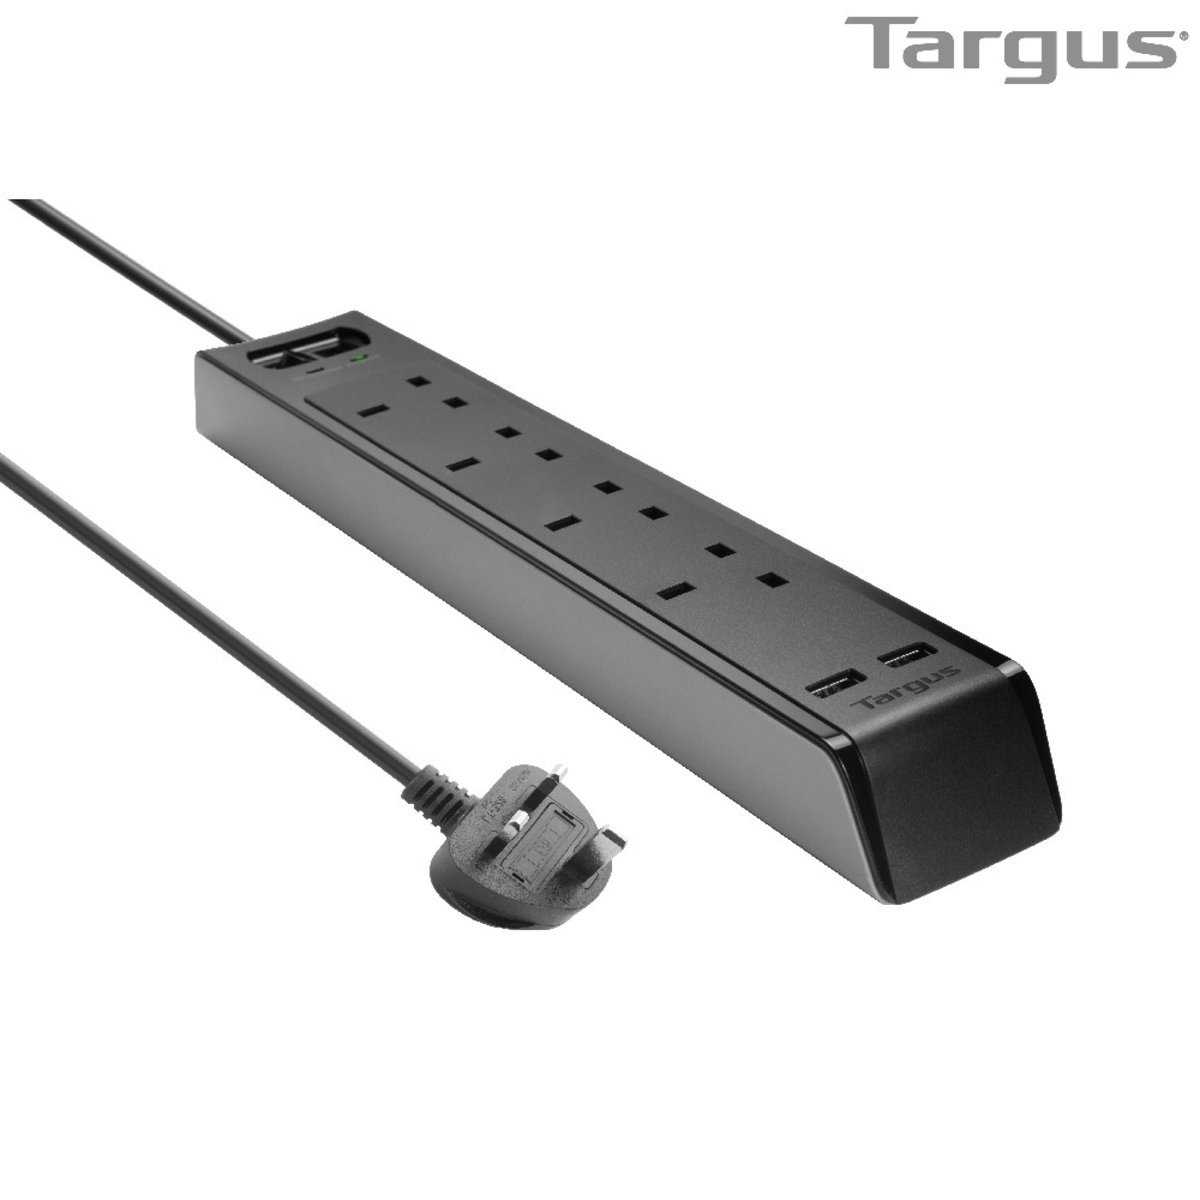 SMARTSURGE 4 PROTECTOR 2 USB PORT POWER BAR (APS10AP-50)